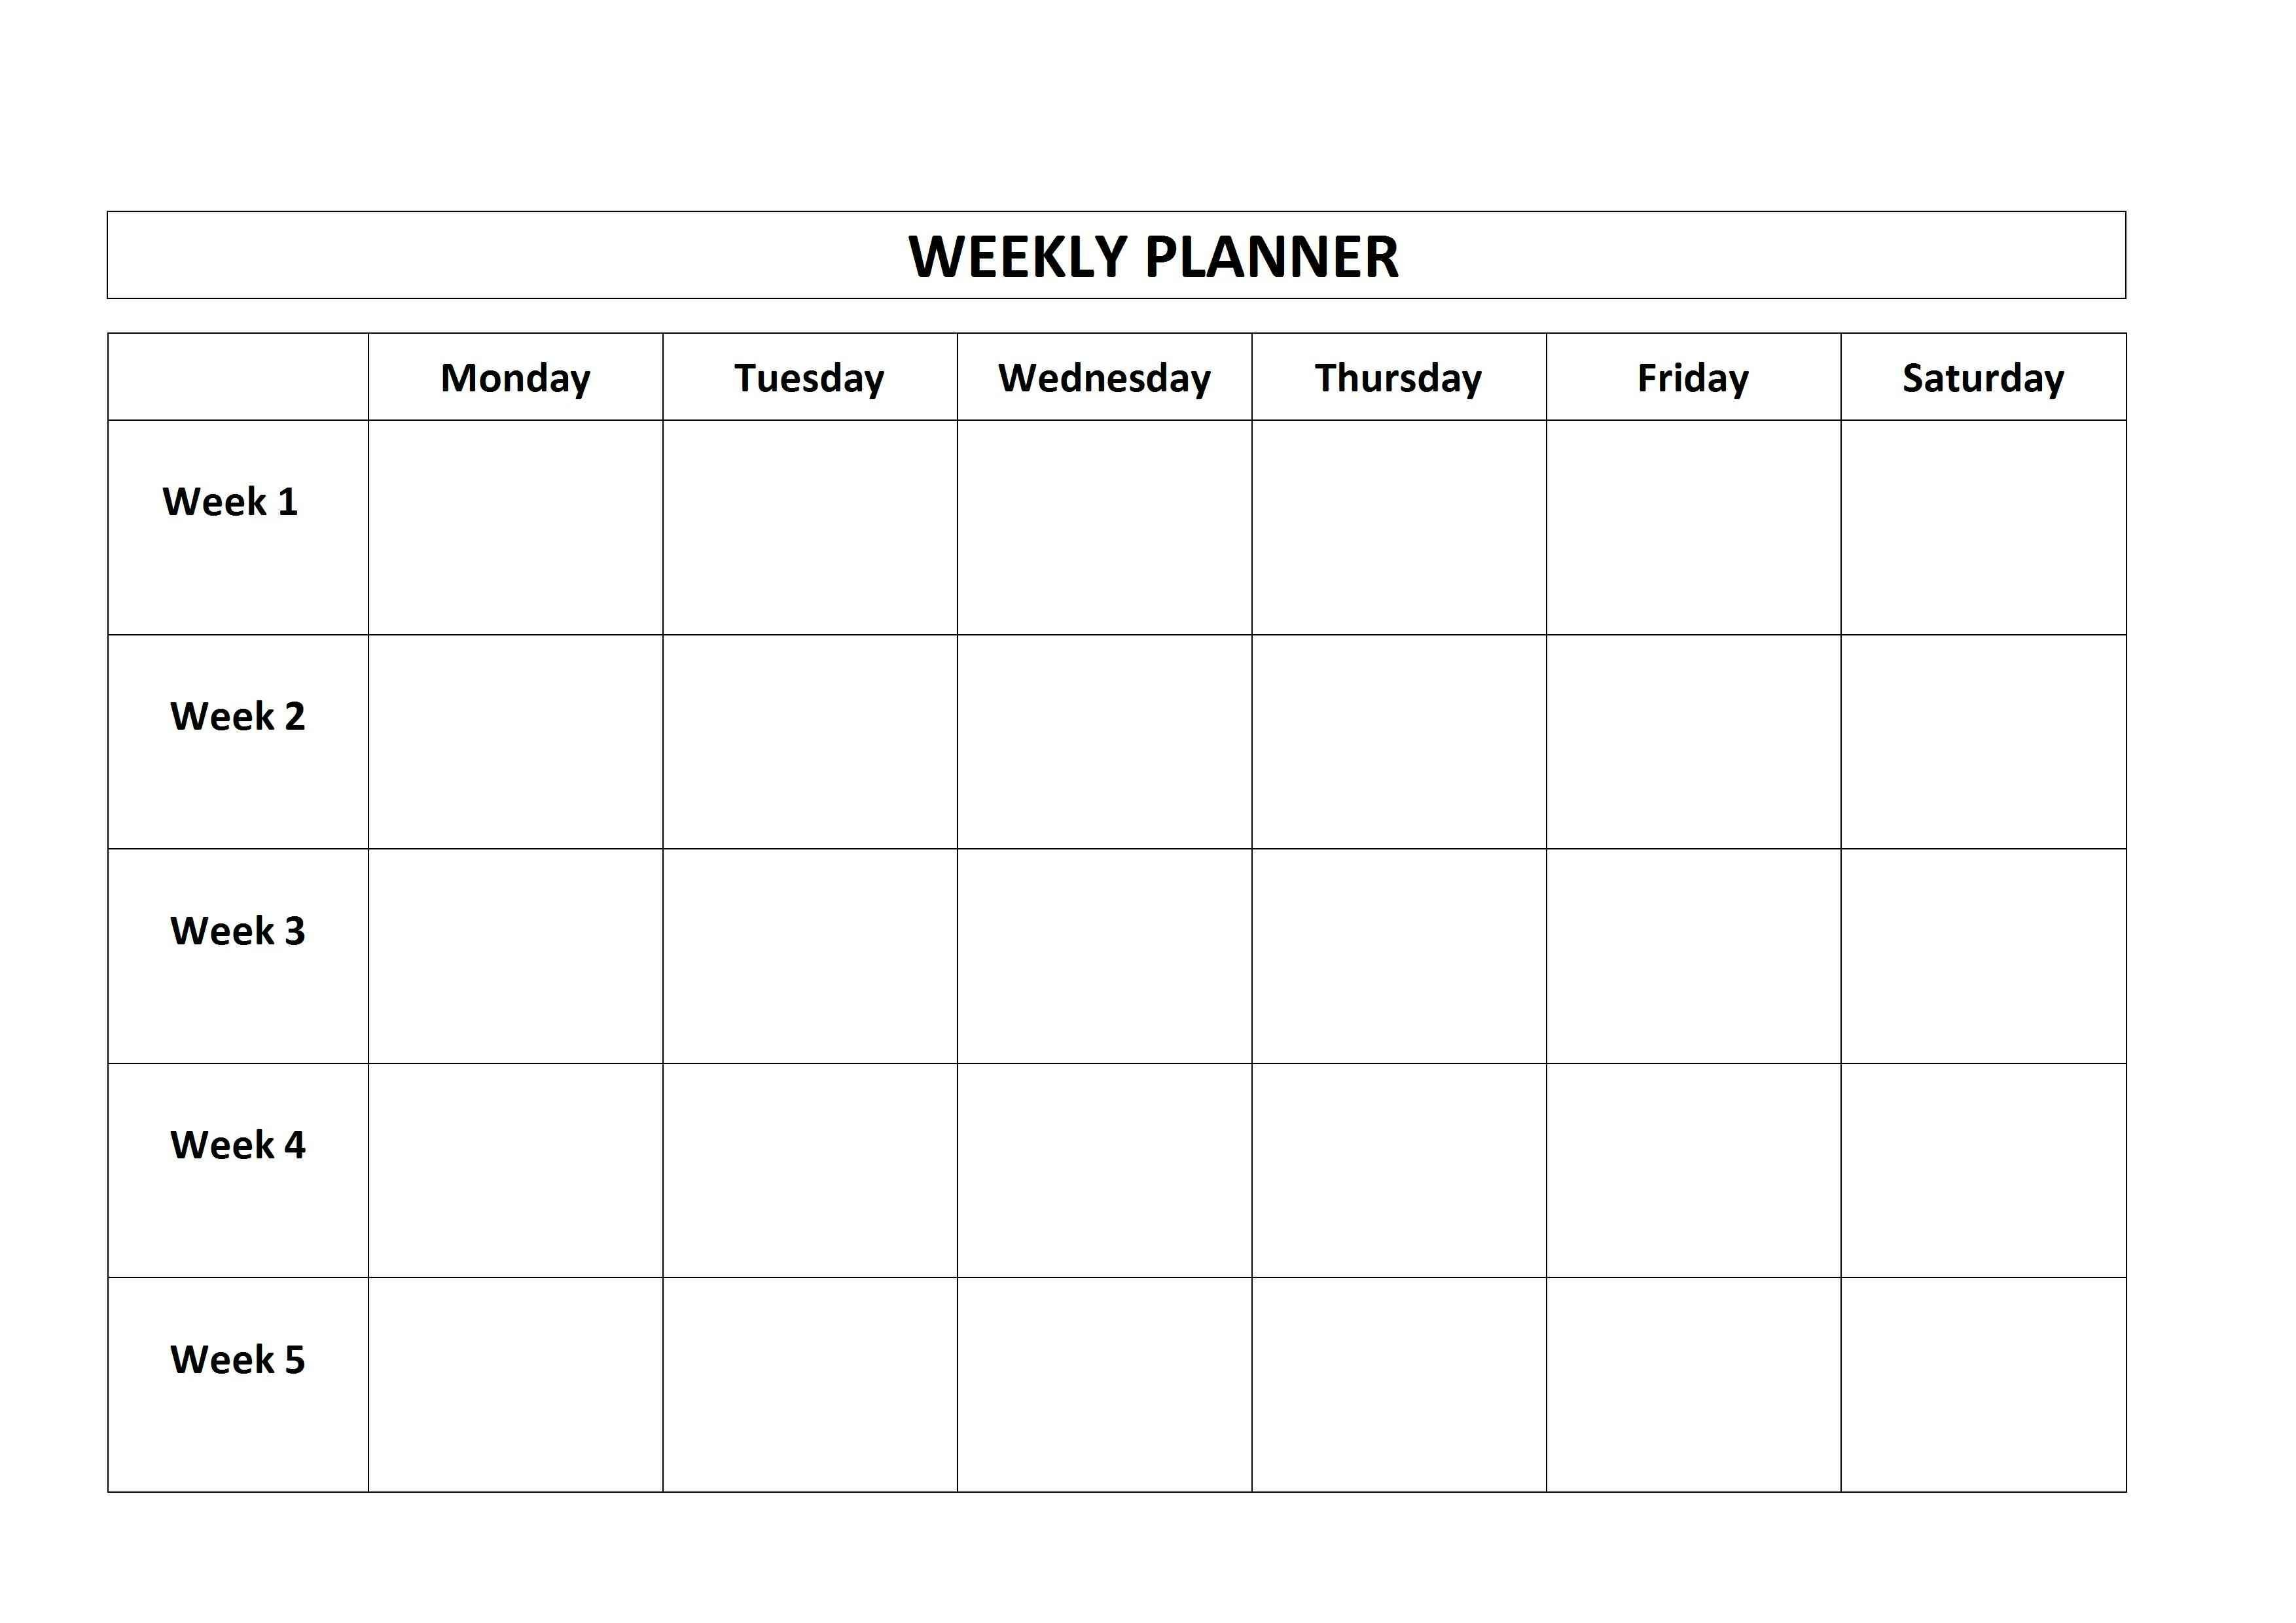 Free Printable Weekly Planner Monday Friday School Calendar Weekly Calendar Template Monday To Friday